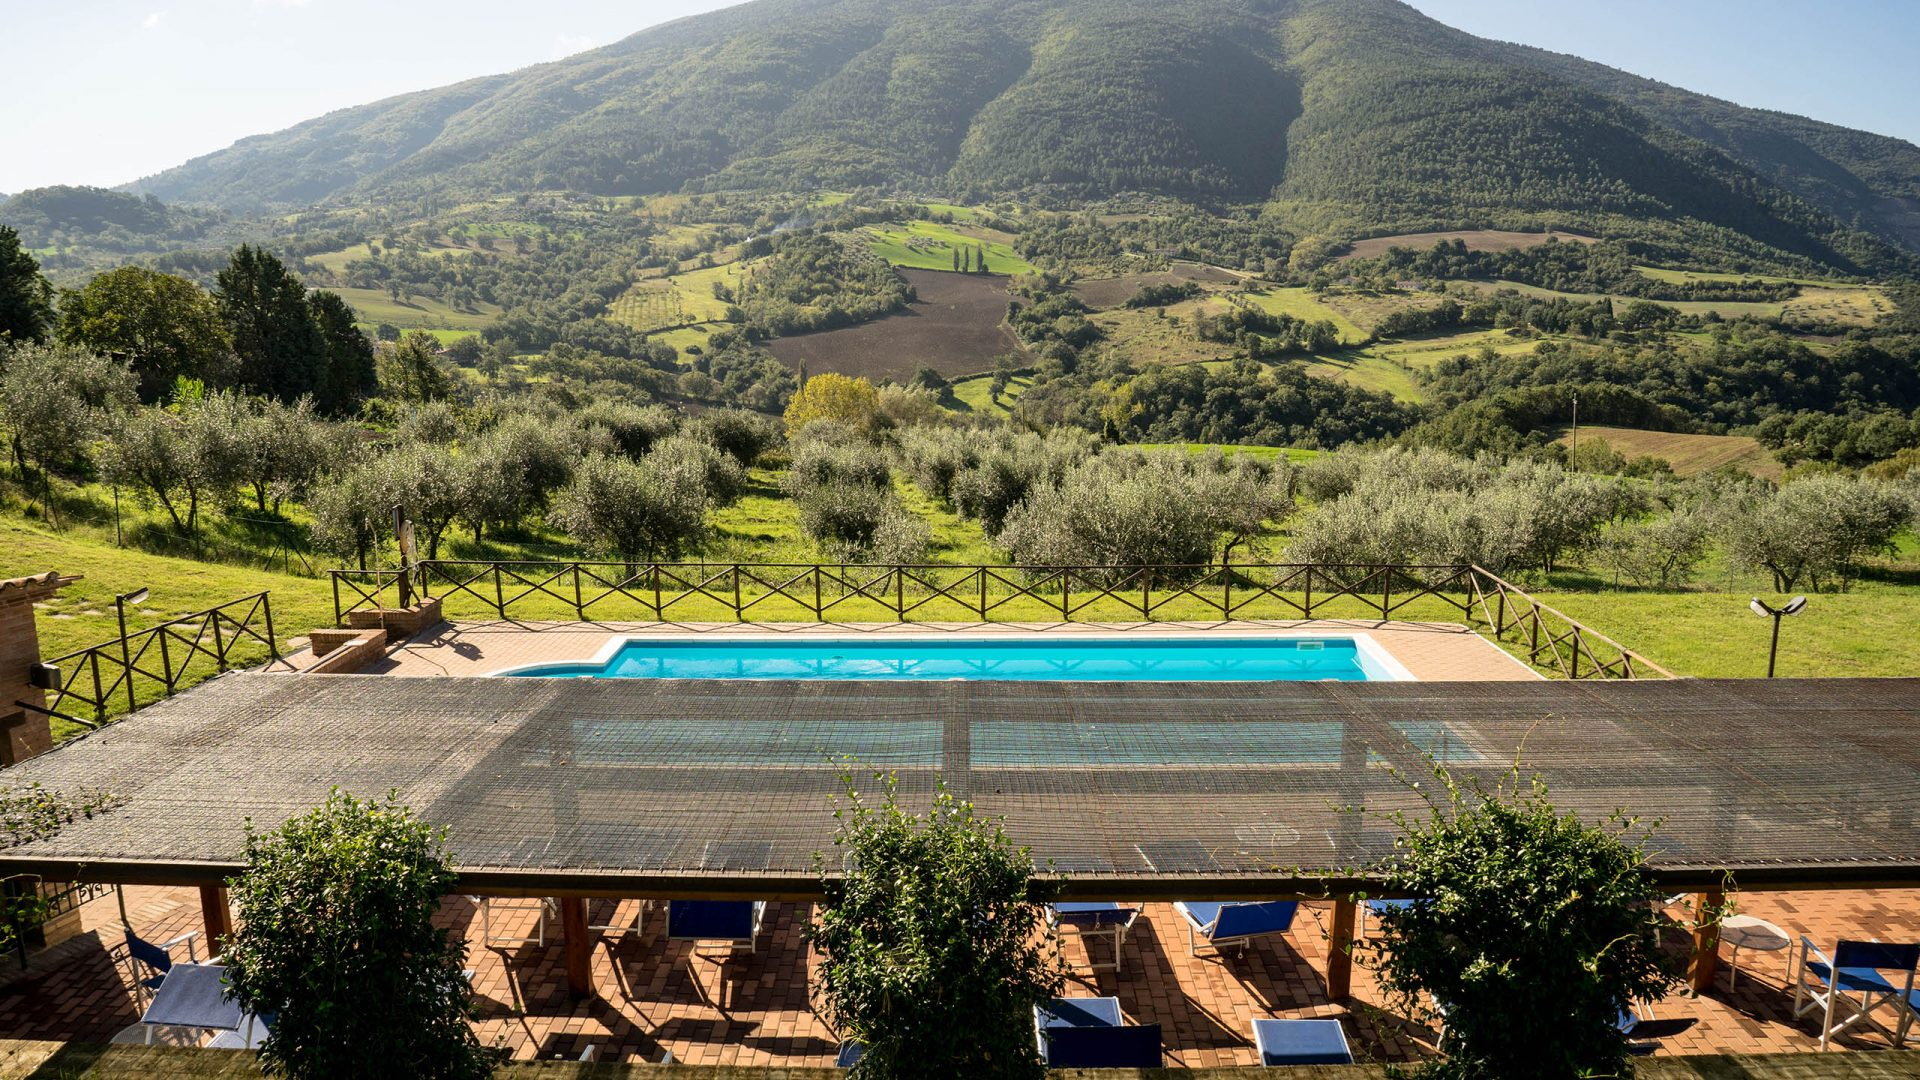 Affitto villa - Villamena Resort Assisi